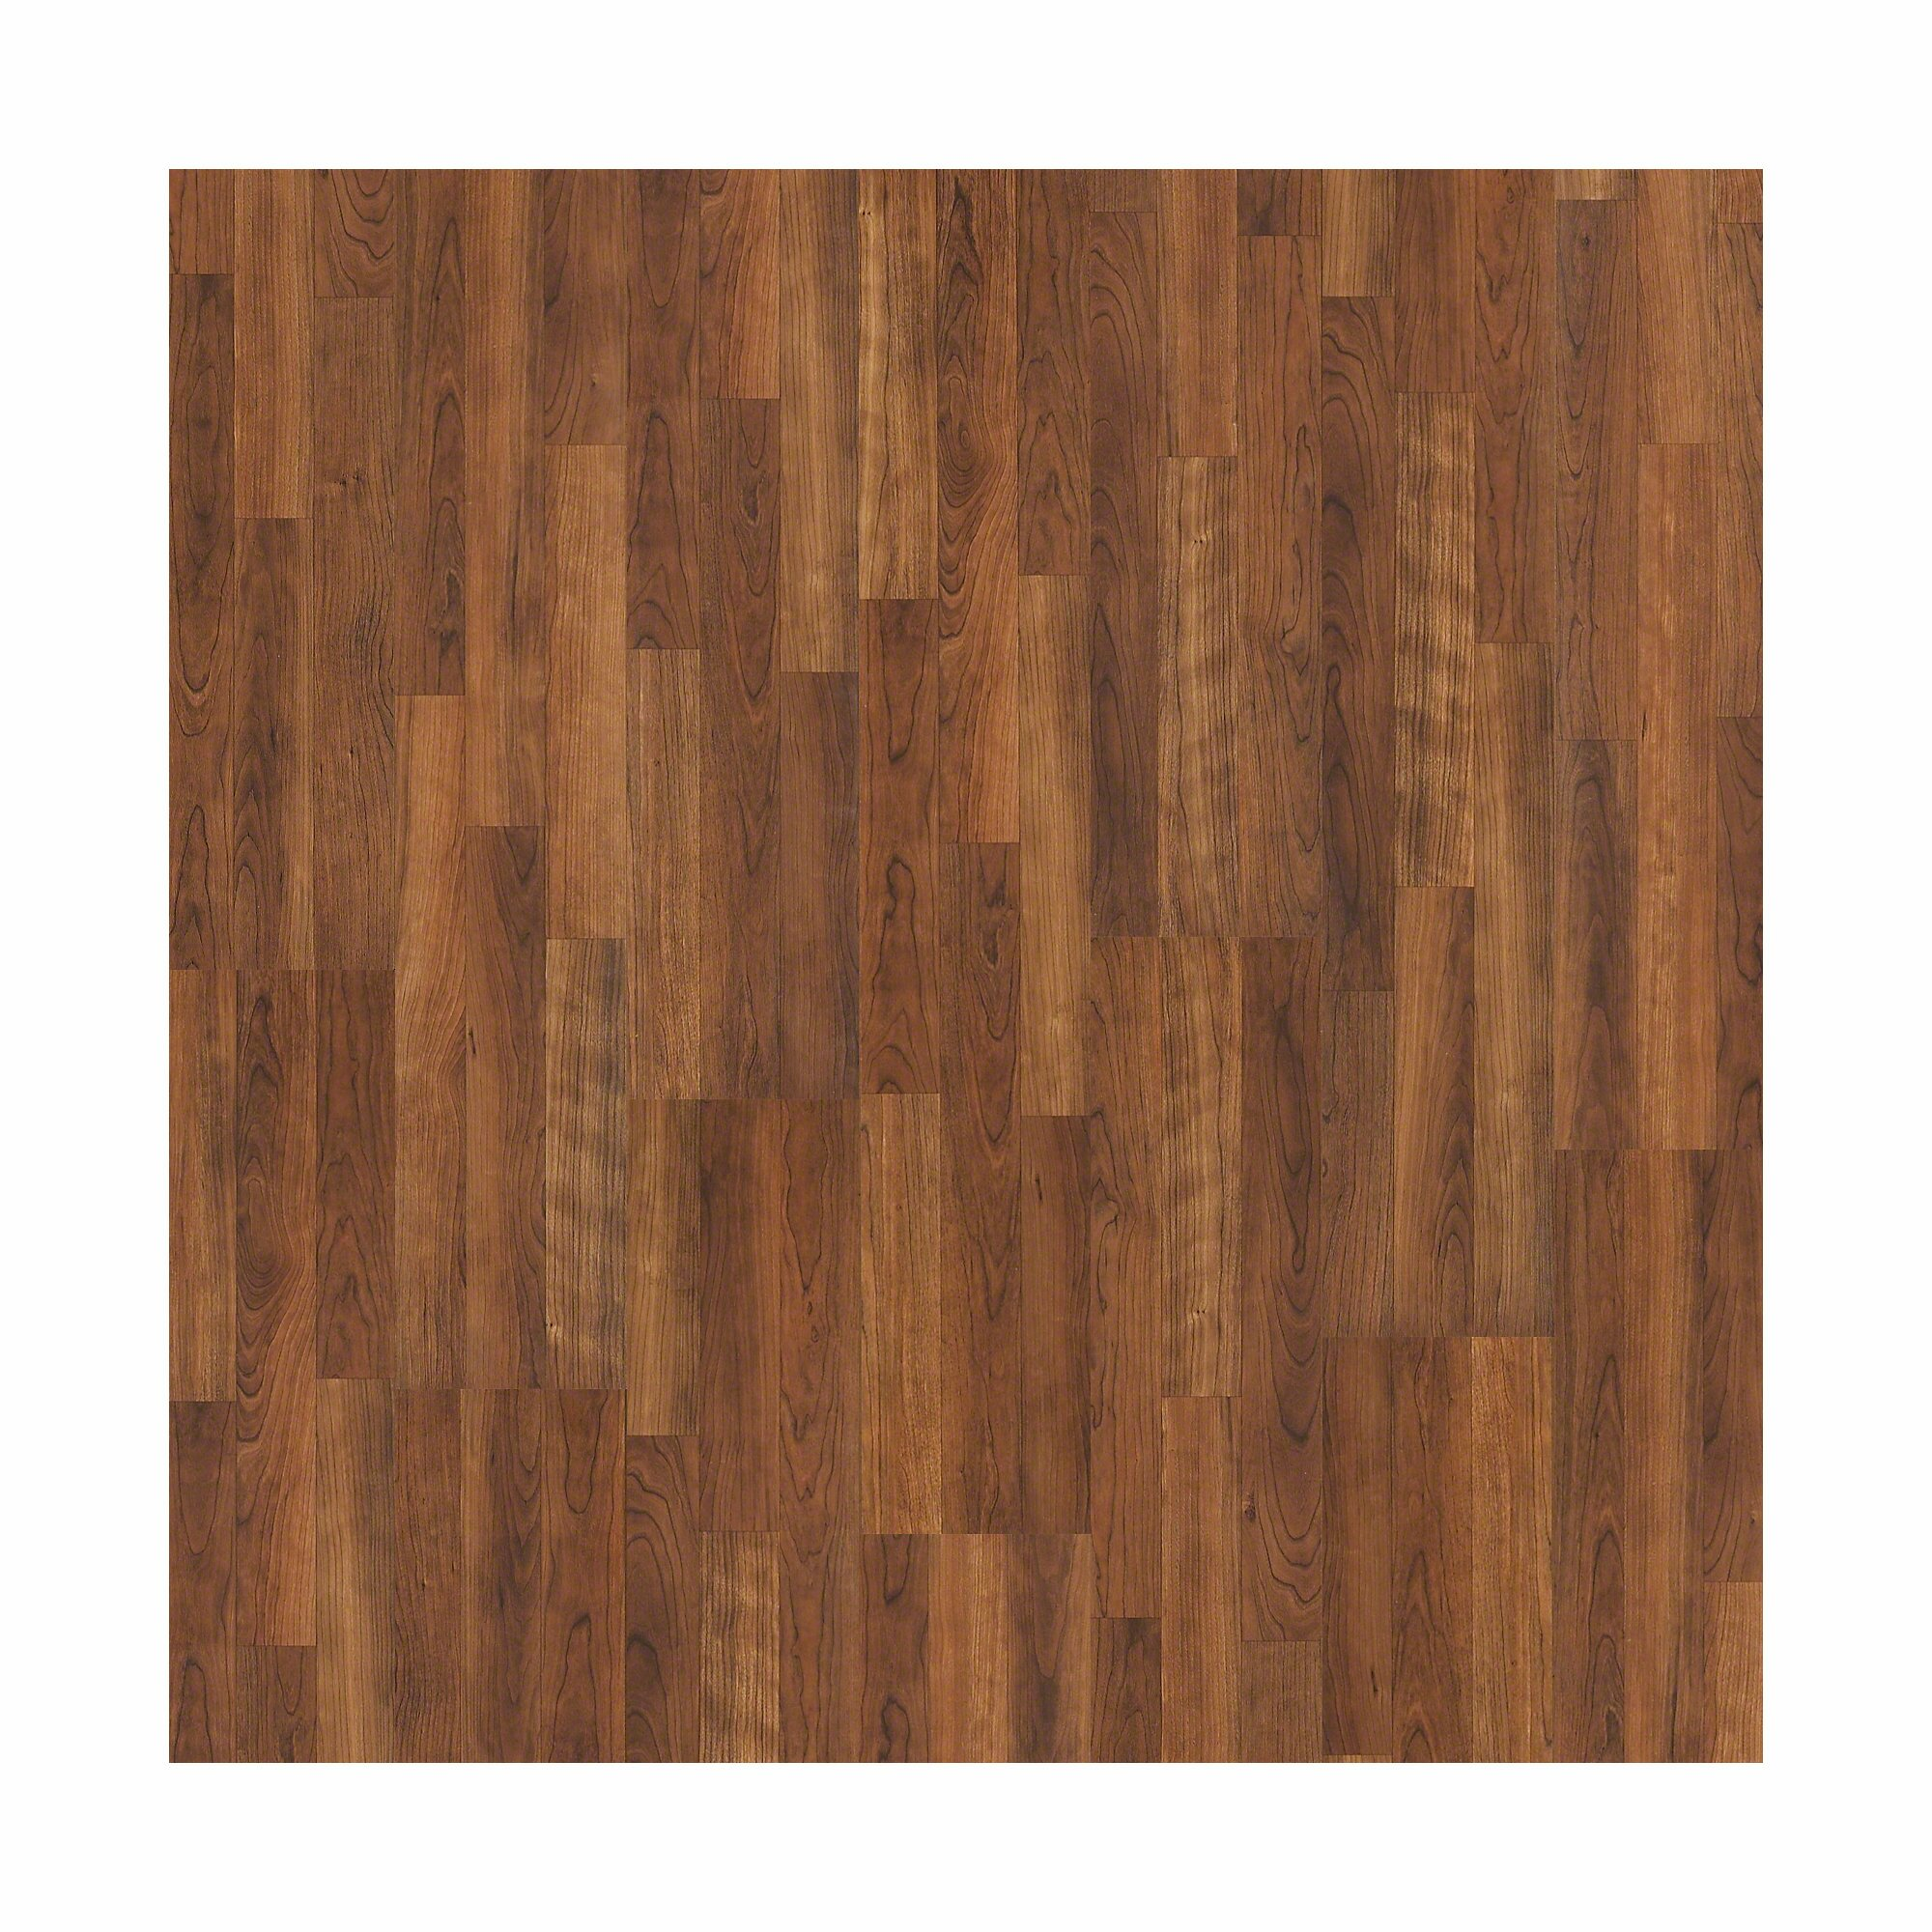 Cherry Laminate Flooring floor boards classic collection rustic cherry Fairfax Cherry Laminate In Woodlawn